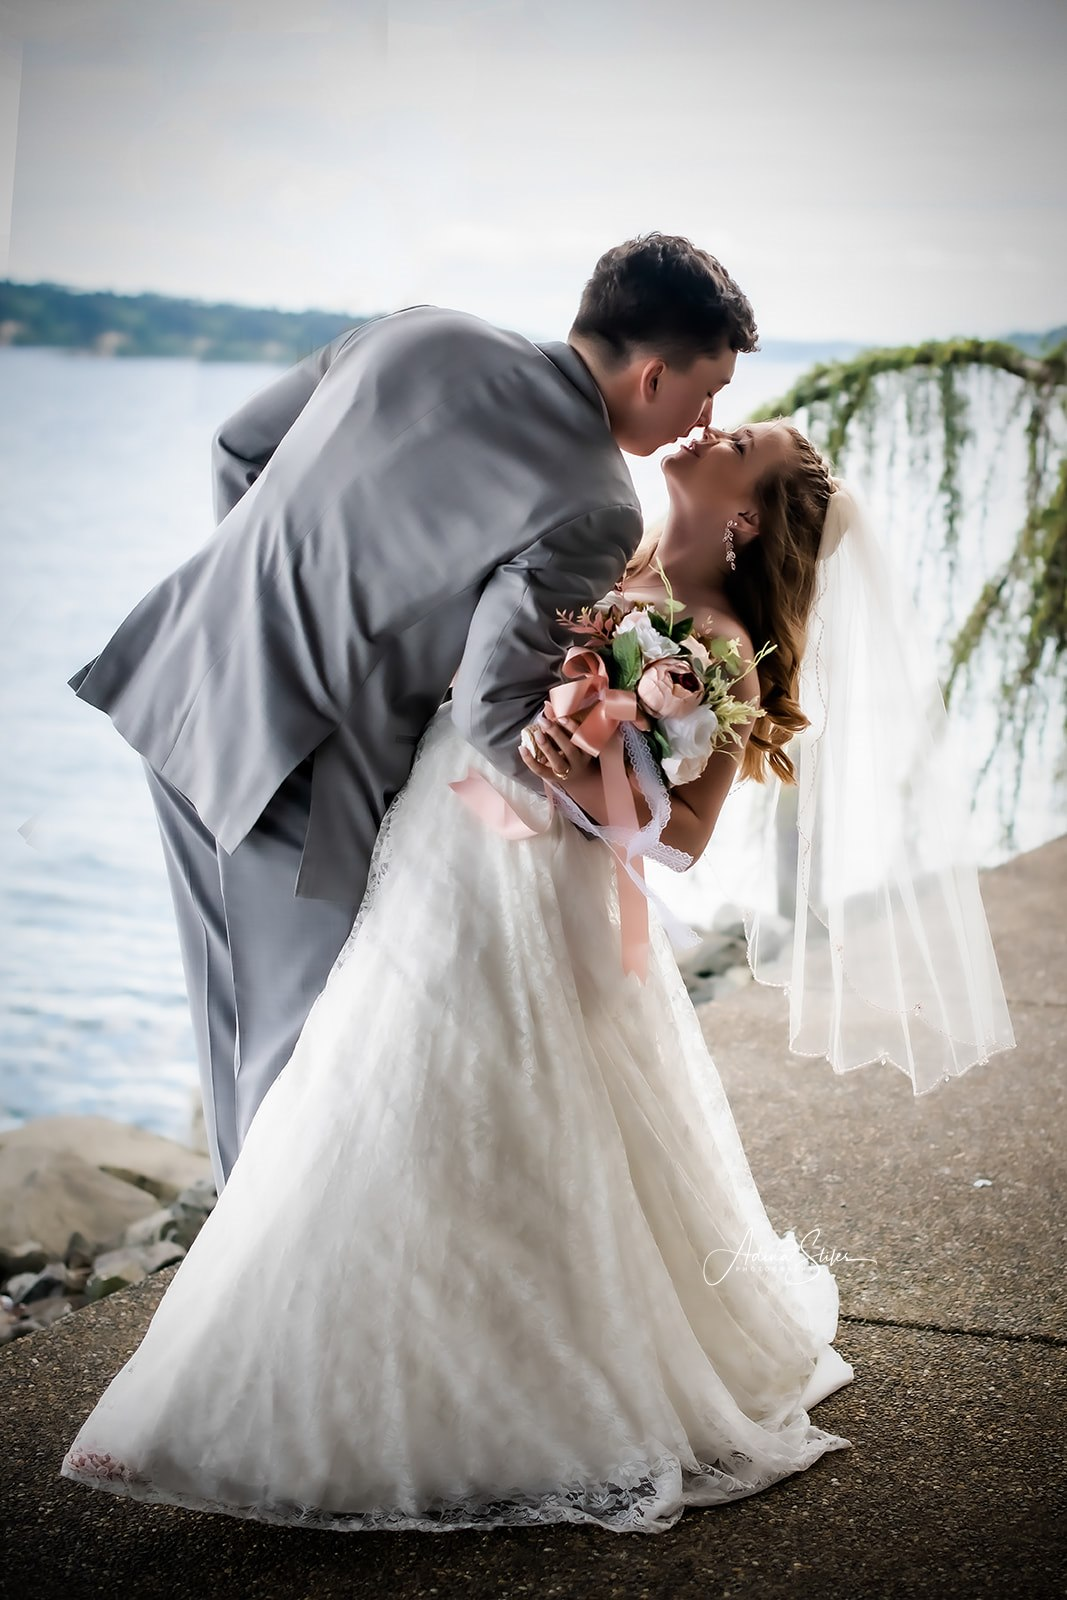 A groom dips his bride by the water during a last-minute wedding celebration in Puget Sound, Washington.